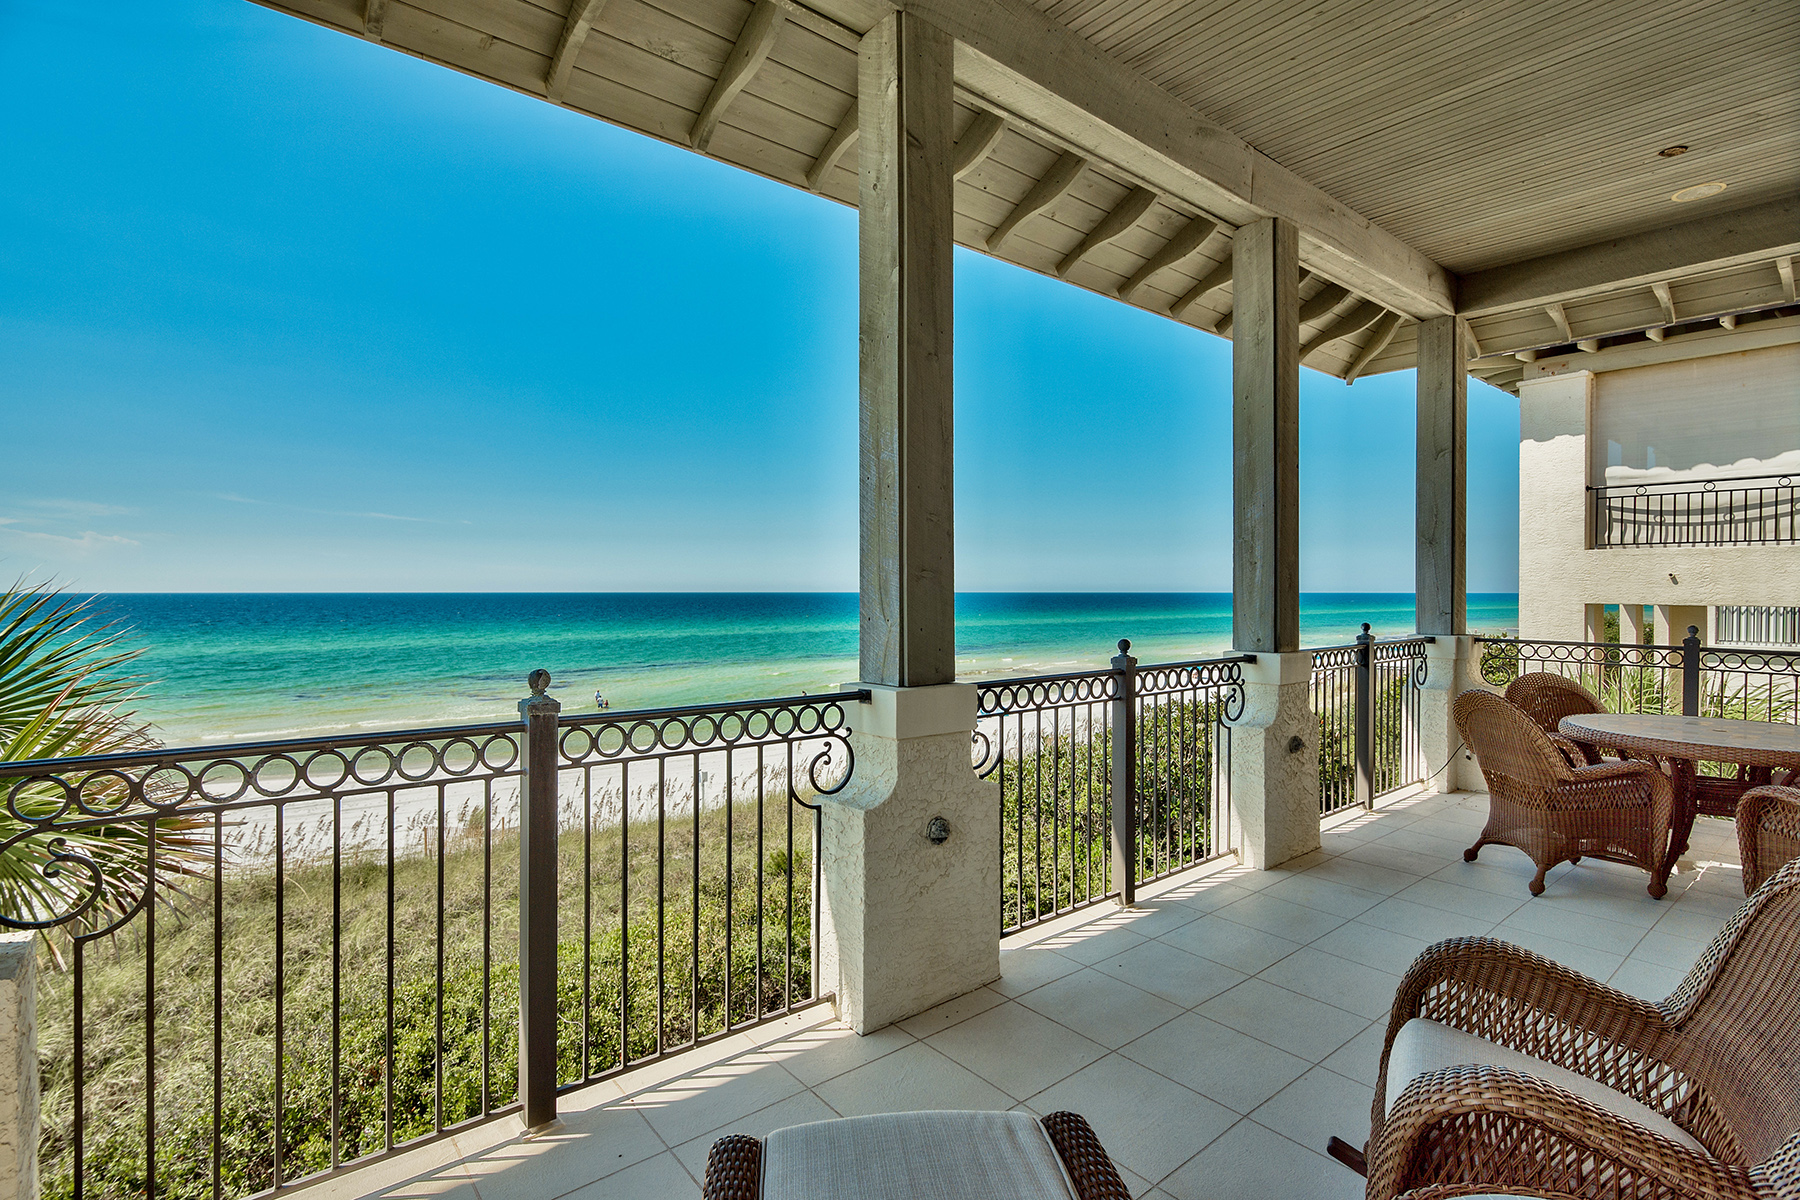 Single Family Home for Sale at LUXURIOUS GULF FRONT MEDITERRANEAN RETREAT IN UPSCALE VIZCAYA 1025 Vizcaya Drive Santa Rosa Beach, Florida, 32459 United States